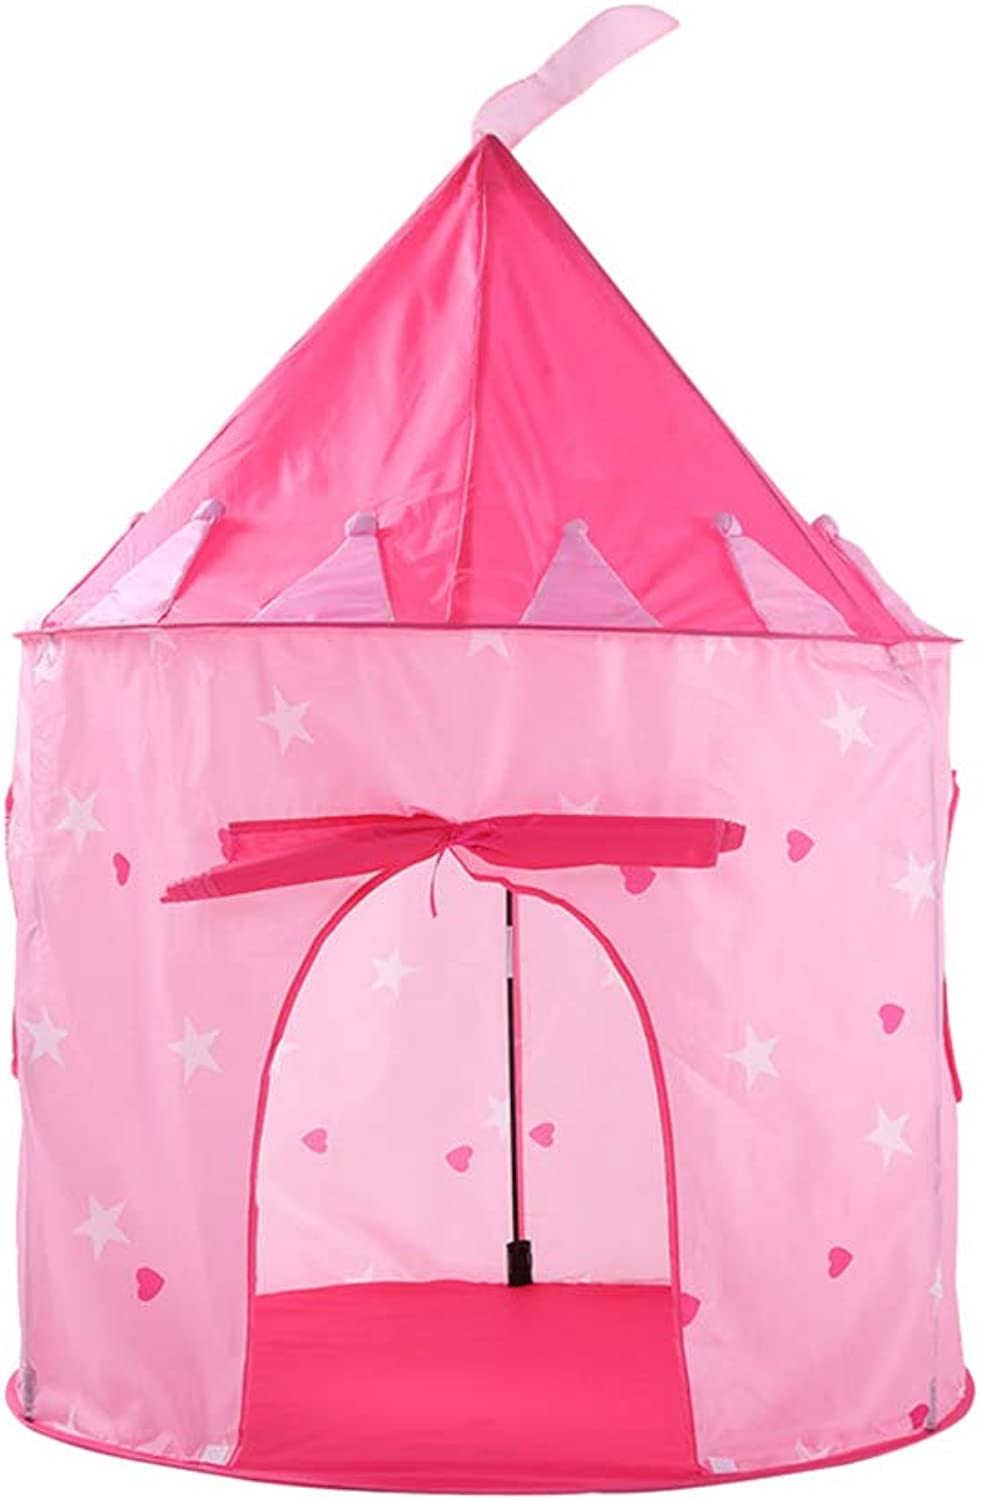 LIOOBO Princess Castle Play Tent with Glow in The Dark Stars, conveniently Folds in to a Carrying Case for Indoor Outdoor Use